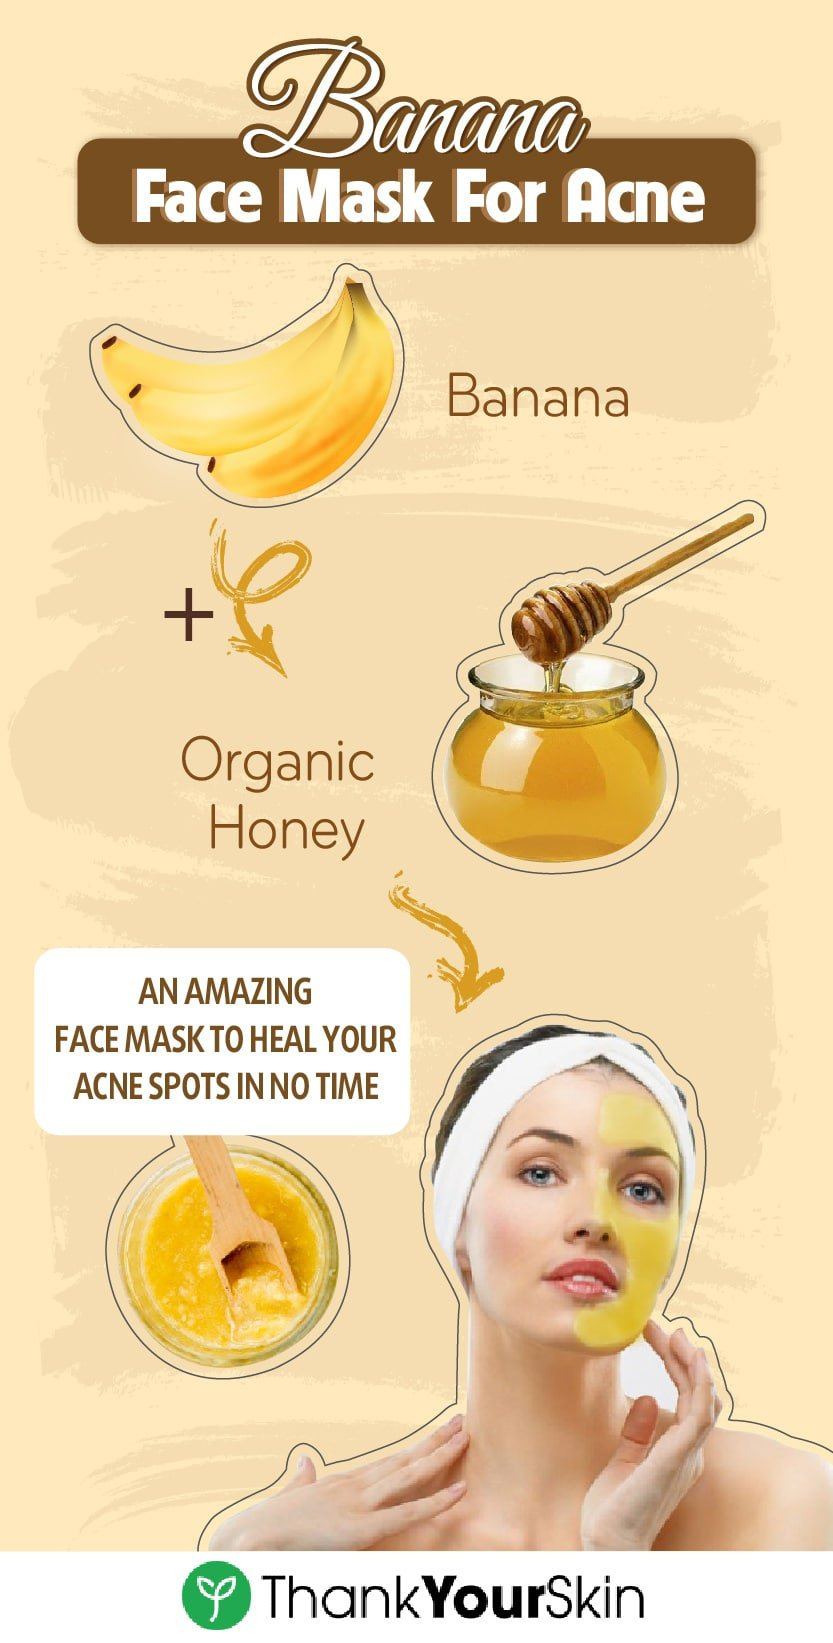 This homemade face mask made from honey and banana is full of vitamins and acne-fighting properties that can soothe irritated skin in no time. Ready to take your skincare routine to a whole new level? Try it today!